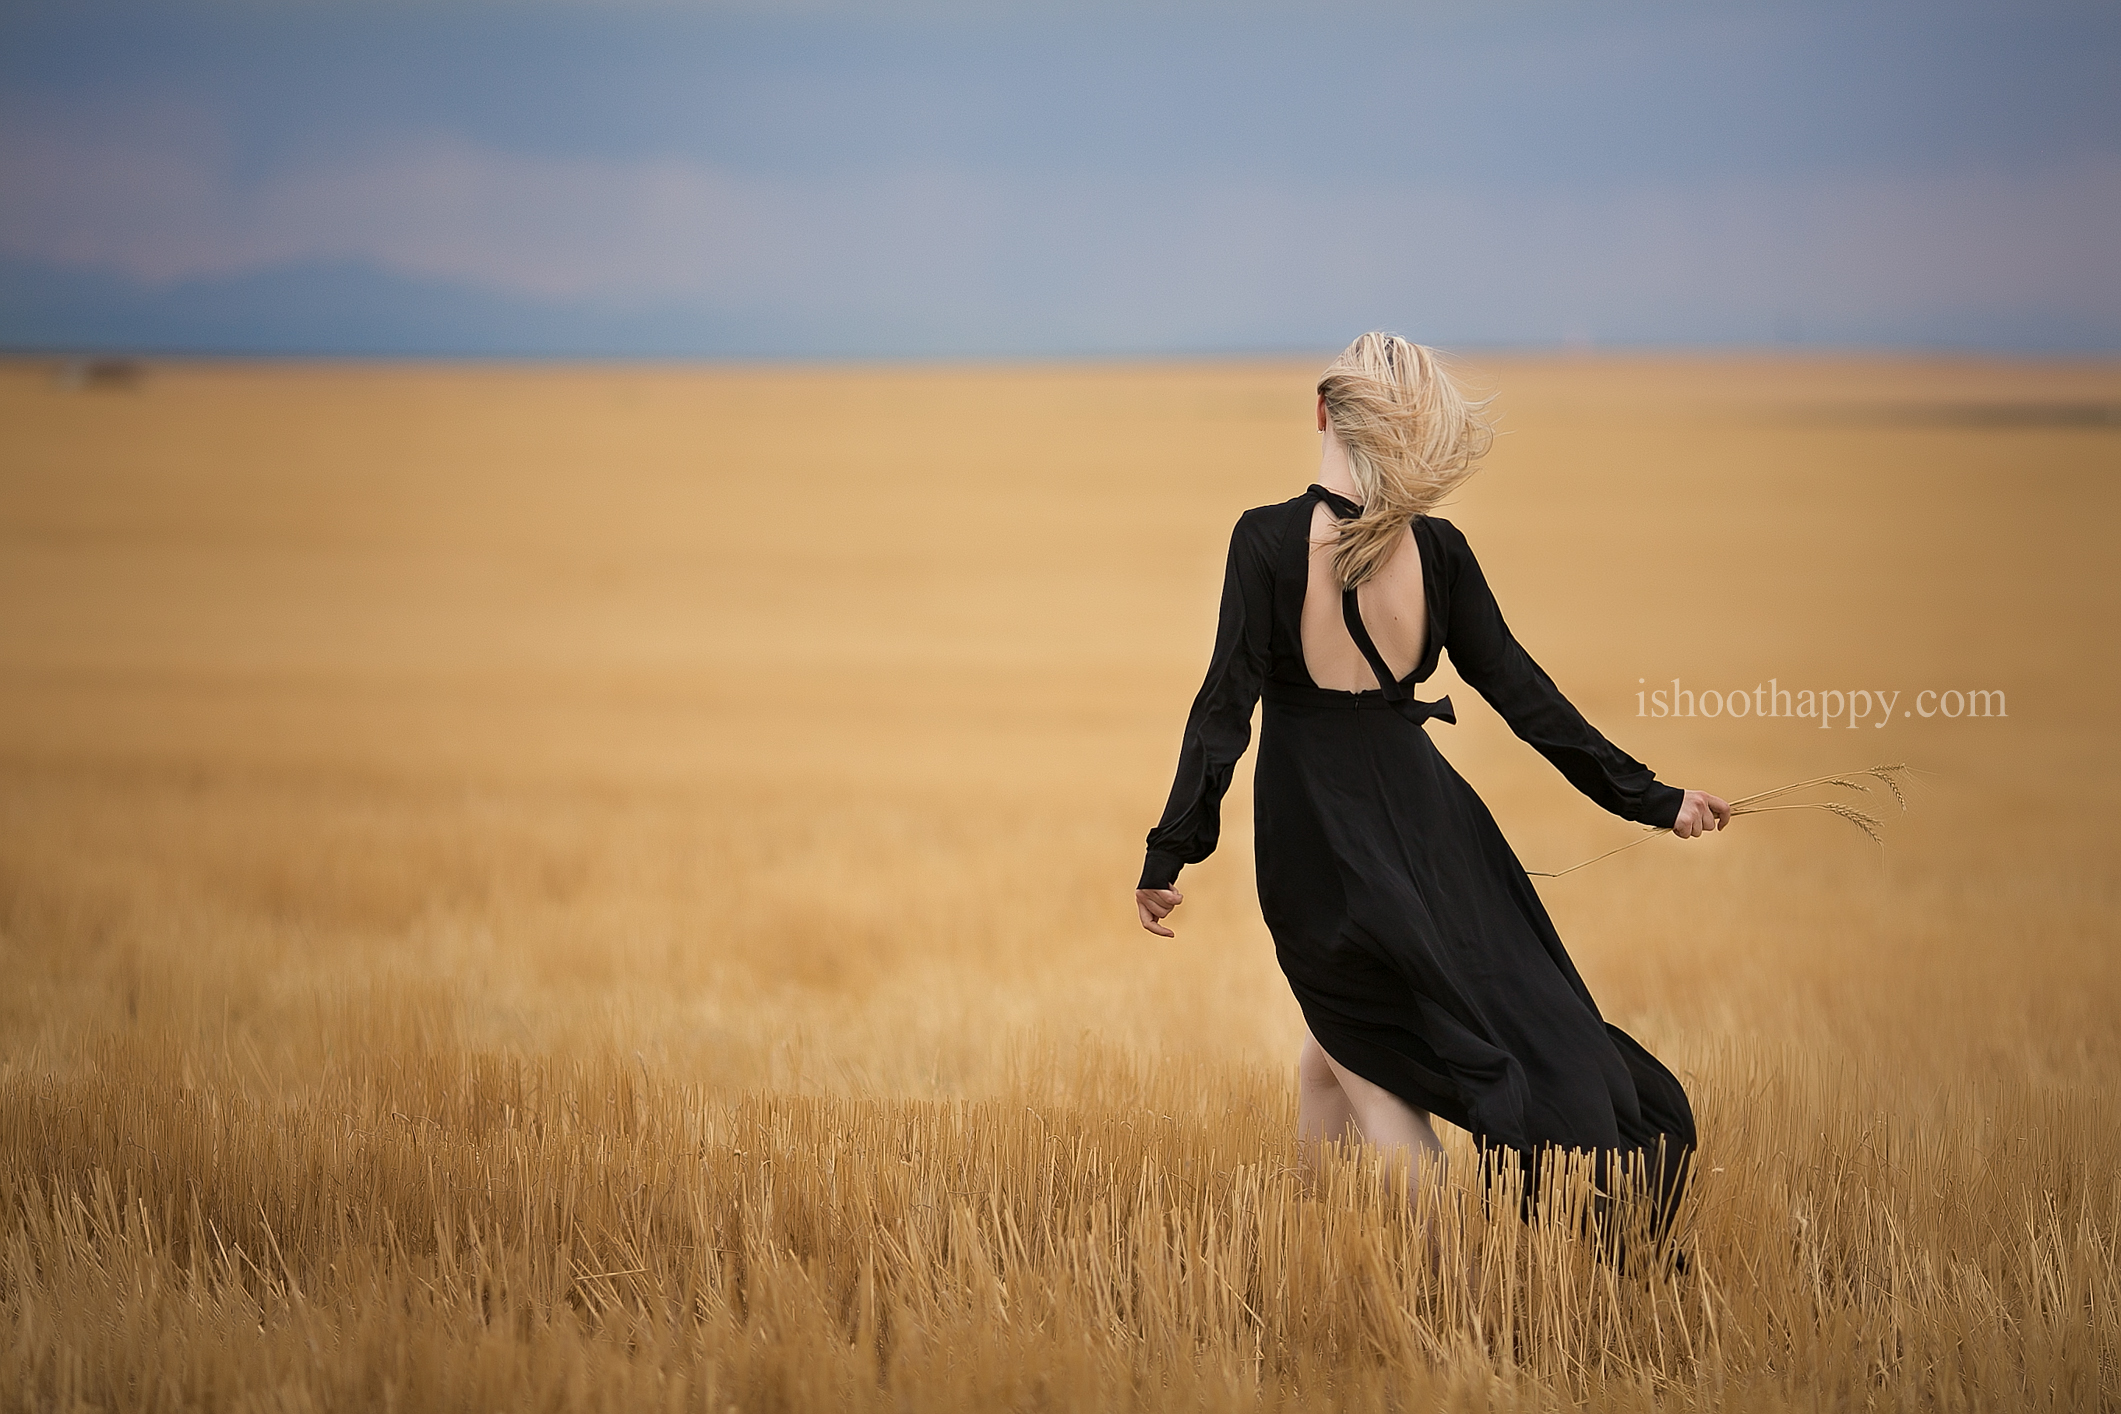 Beautiful portraits in Denver, best Denver photo, amazing portrait photography, gorgeous photographs, beautiful photography, field, wheat fields, wind, whimsical photography in Denver, portrait photography, fine art, wall art photography